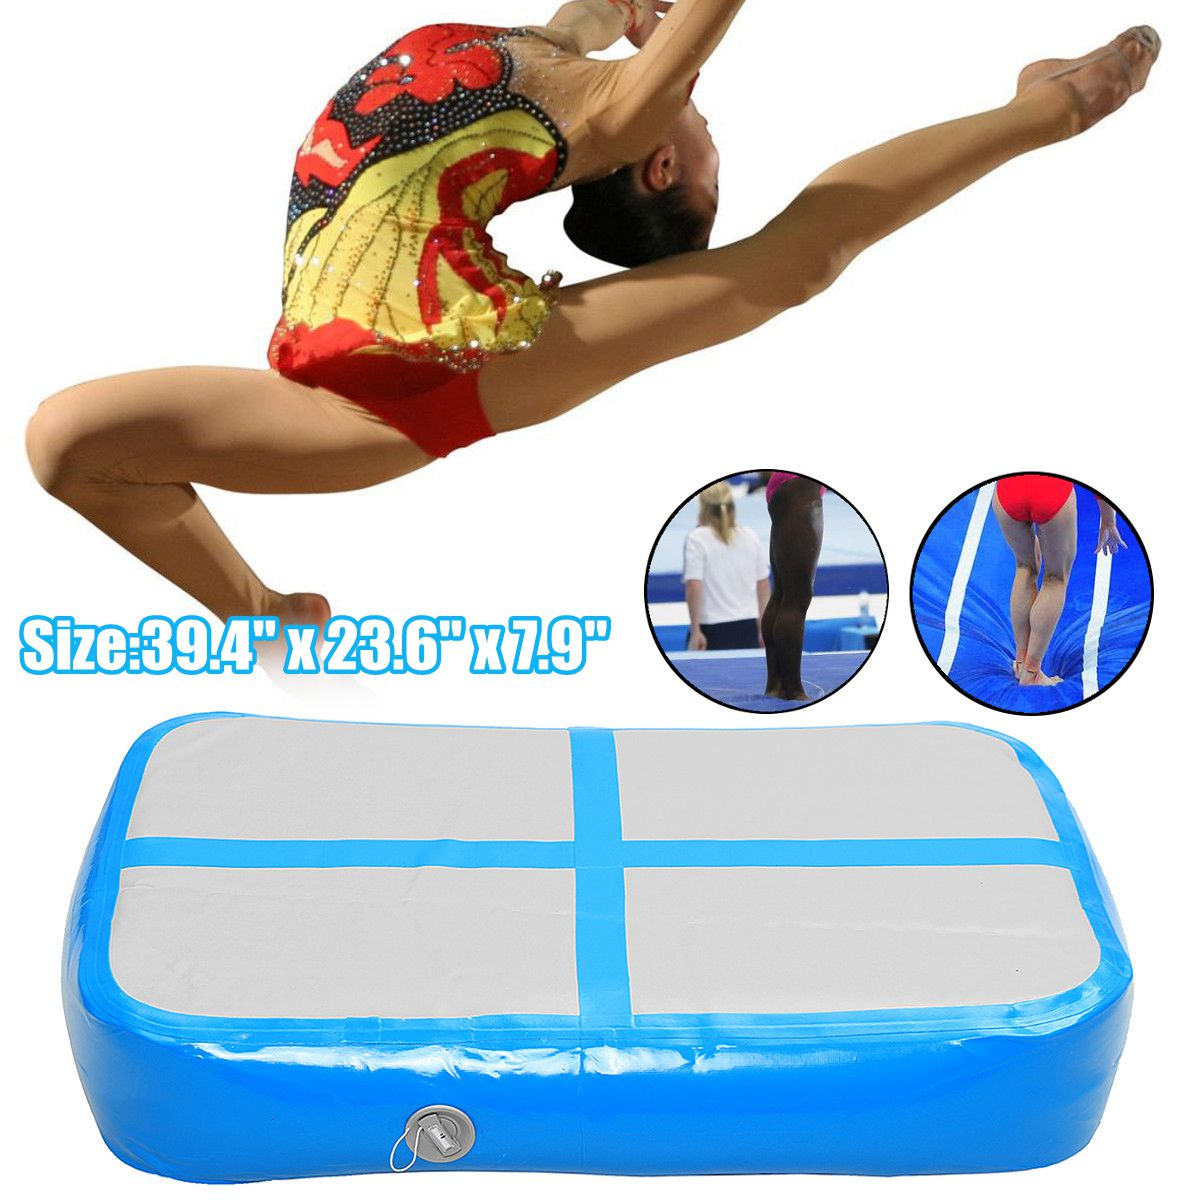 Air Track Floor Home Inflatable Gymnastics Training Tumbling Mat GYM for Kids 8m gymnastics air track fitness exercise gym air tumbling mat training inflatable track floor home gymnastic high quality